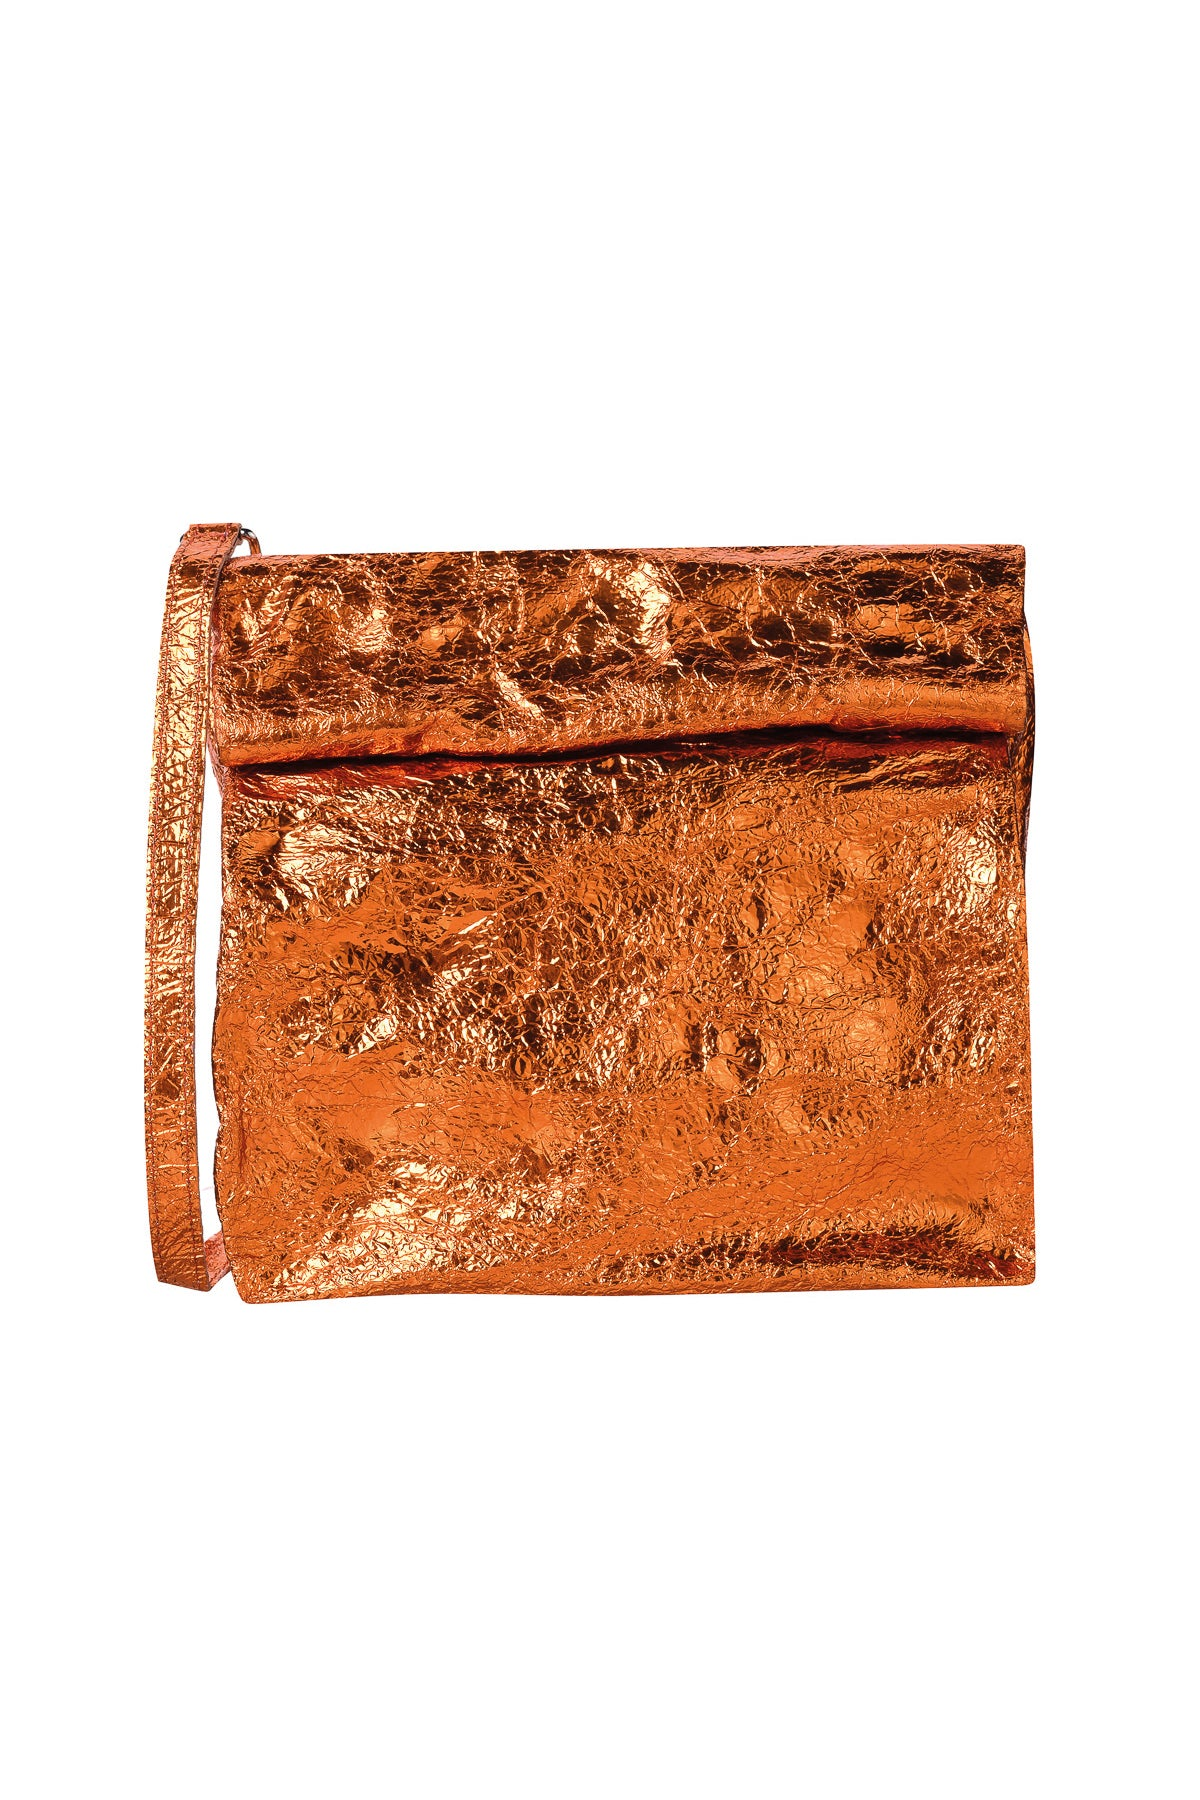 ORANGE LEATHER PAPER BAG - marques-almeida-dev